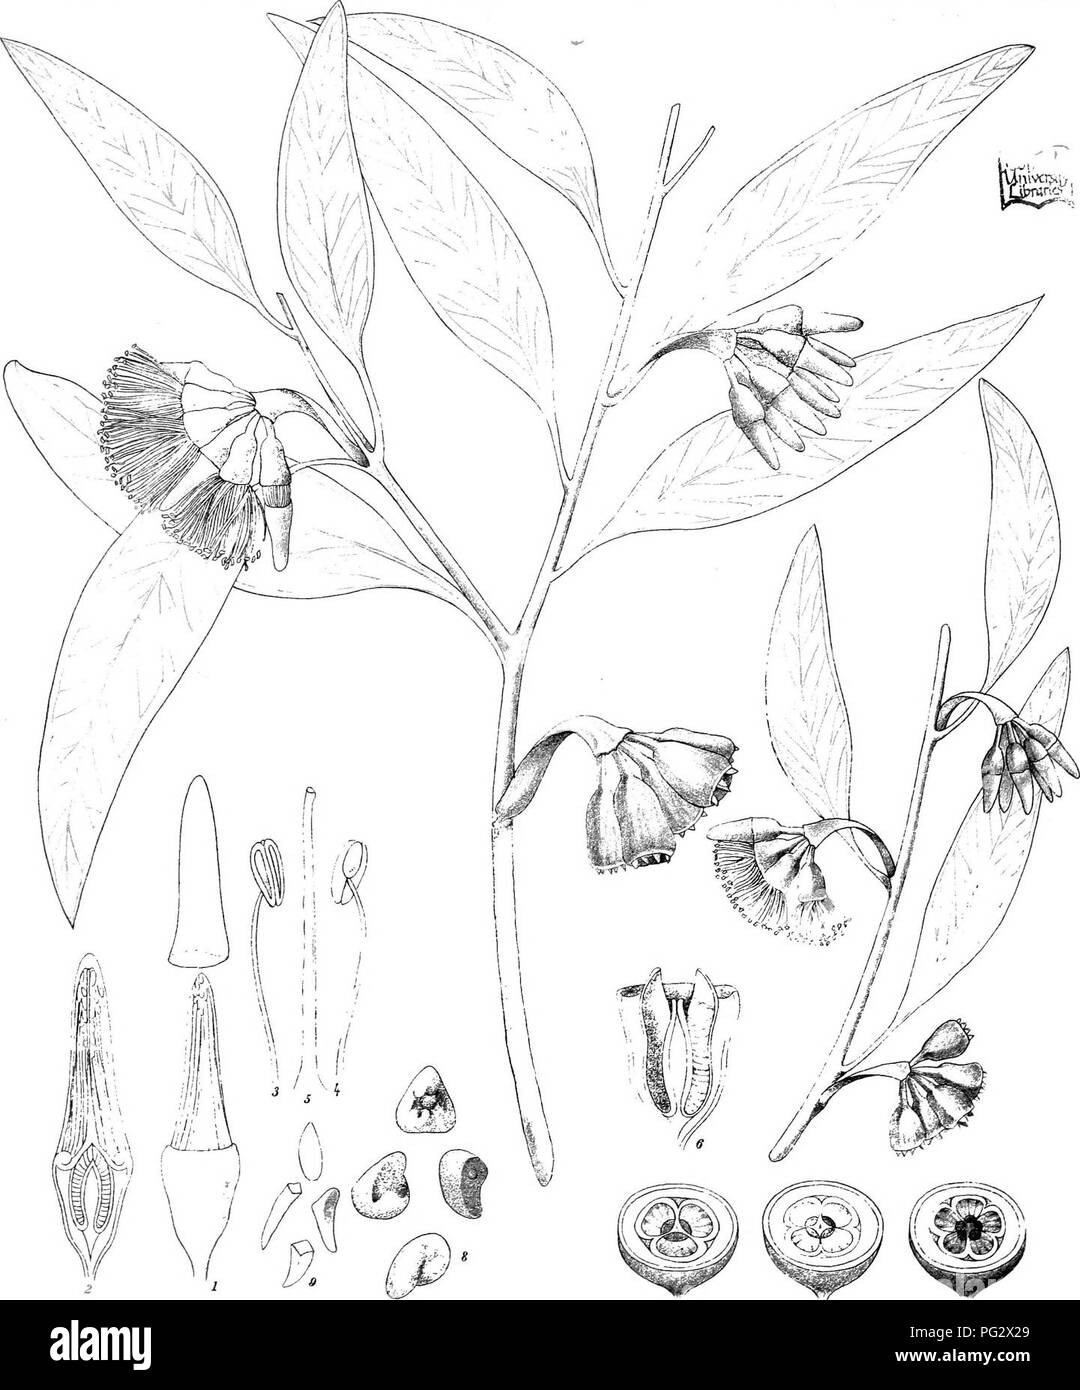 . Eucalyptographia. A descriptive atlas of the eucalypts of Australia and the adjoining islands;. Eucalyptus; Botany. r, iel: & C l;lh. 7-^r M. iirexib. SUam LitRo Sot Pr,r,HT,4 nffifo.M^lb. i^m(g^%35)te (D(g(gM(BiMa^o EndliGher.. Please note that these images are extracted from scanned page images that may have been digitally enhanced for readability - coloration and appearance of these illustrations may not perfectly resemble the original work.. Mueller, Ferdinand von, 1825-1896. Melbourne, J. Ferres, Govt. Print; [etc. ,etc. ] - Stock Image